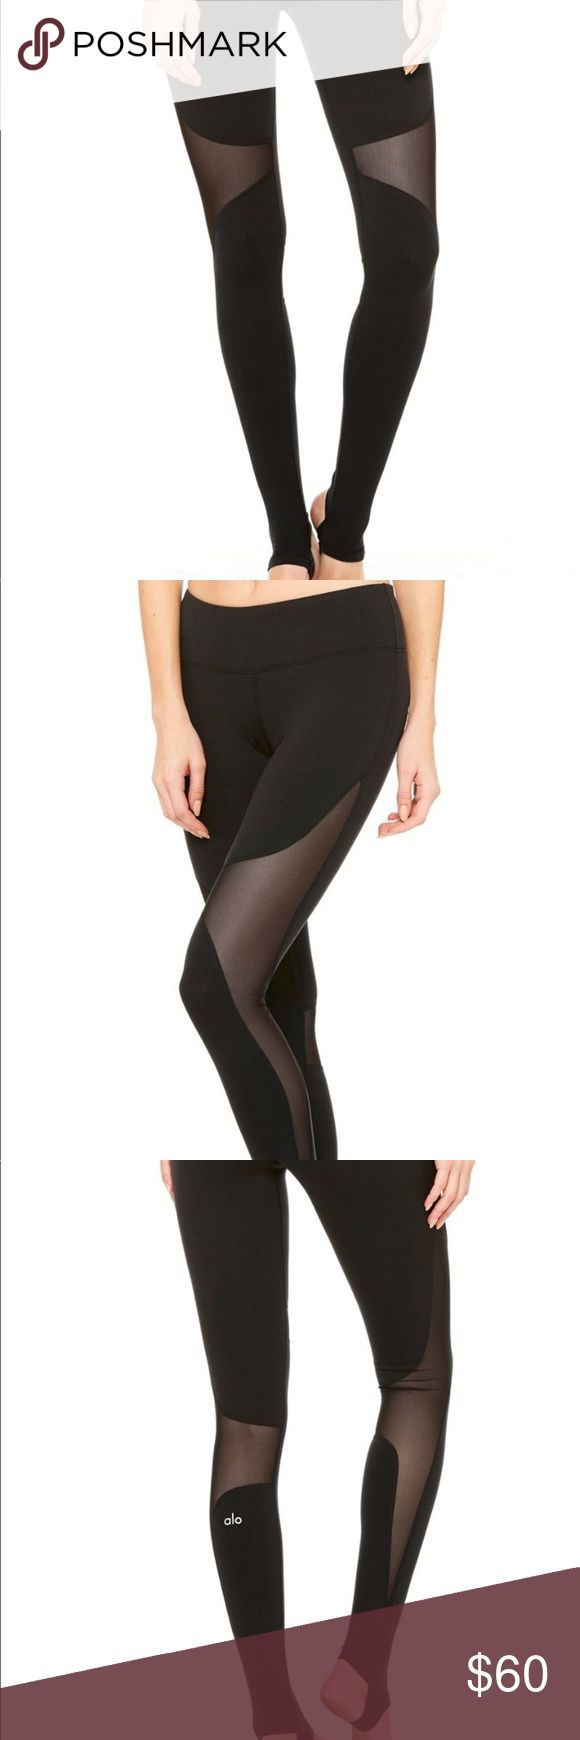 Alo yoga coast leggings Only worn a couple times in perfect condition!! ALO Yoga Pants Leggings